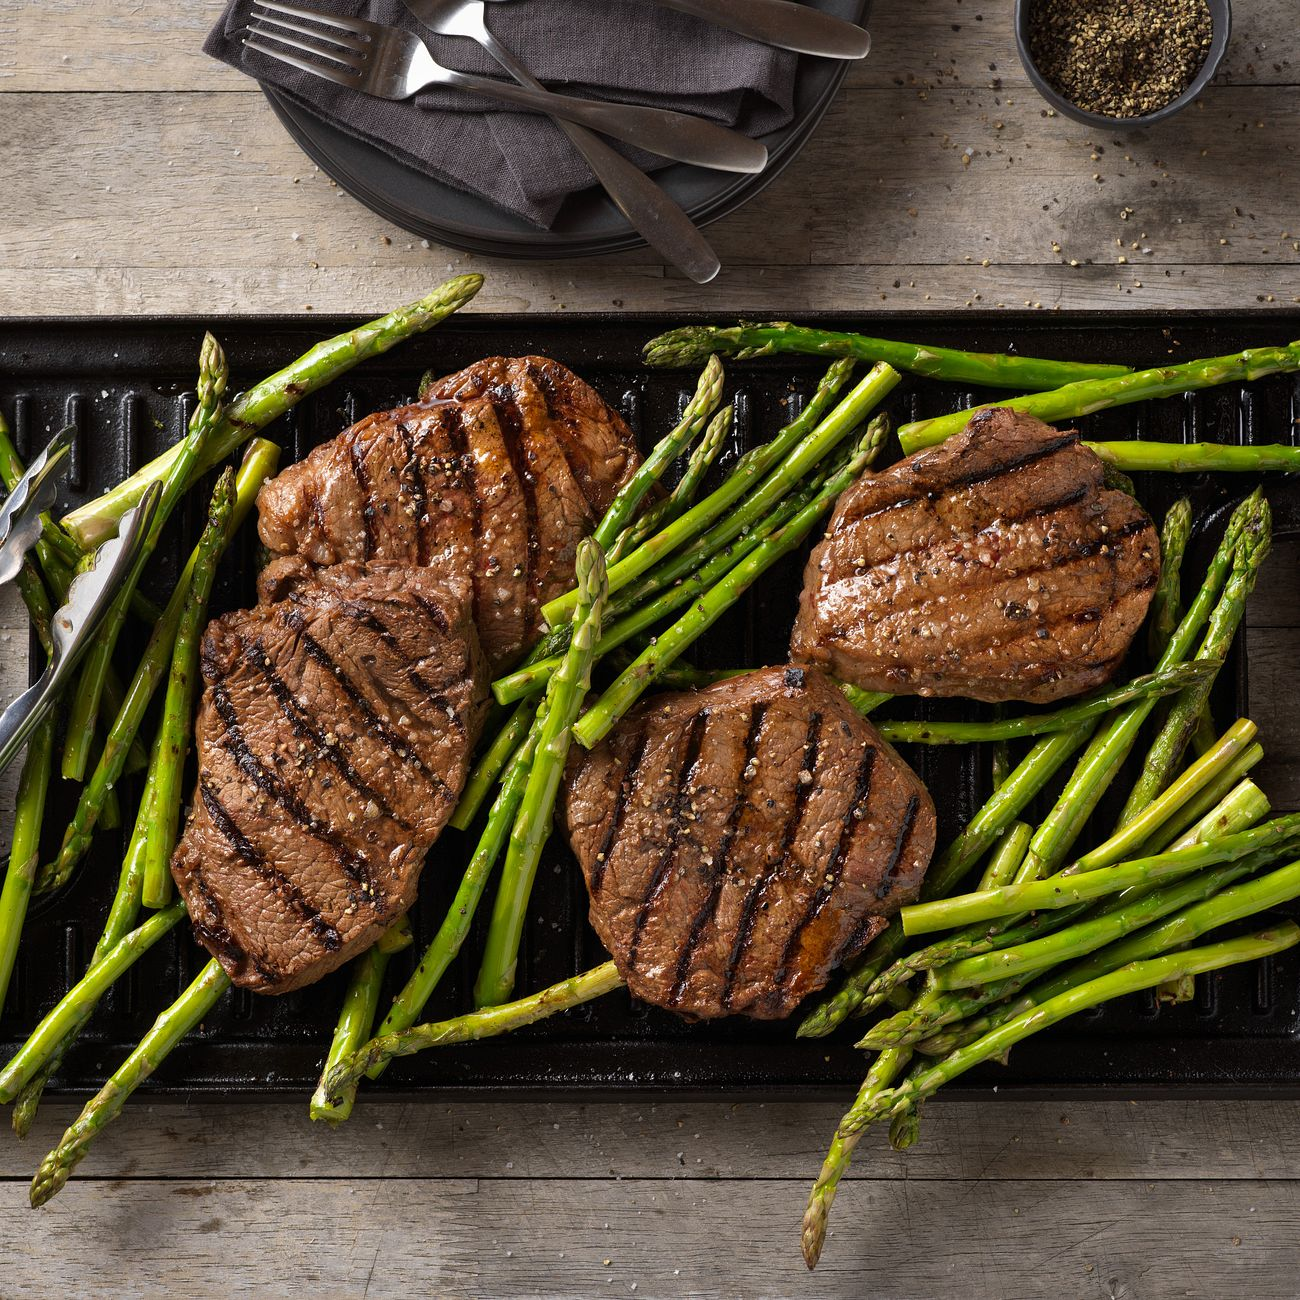 balsamic-marinated-beef-top-sirloin-steak-and-asparagus-square